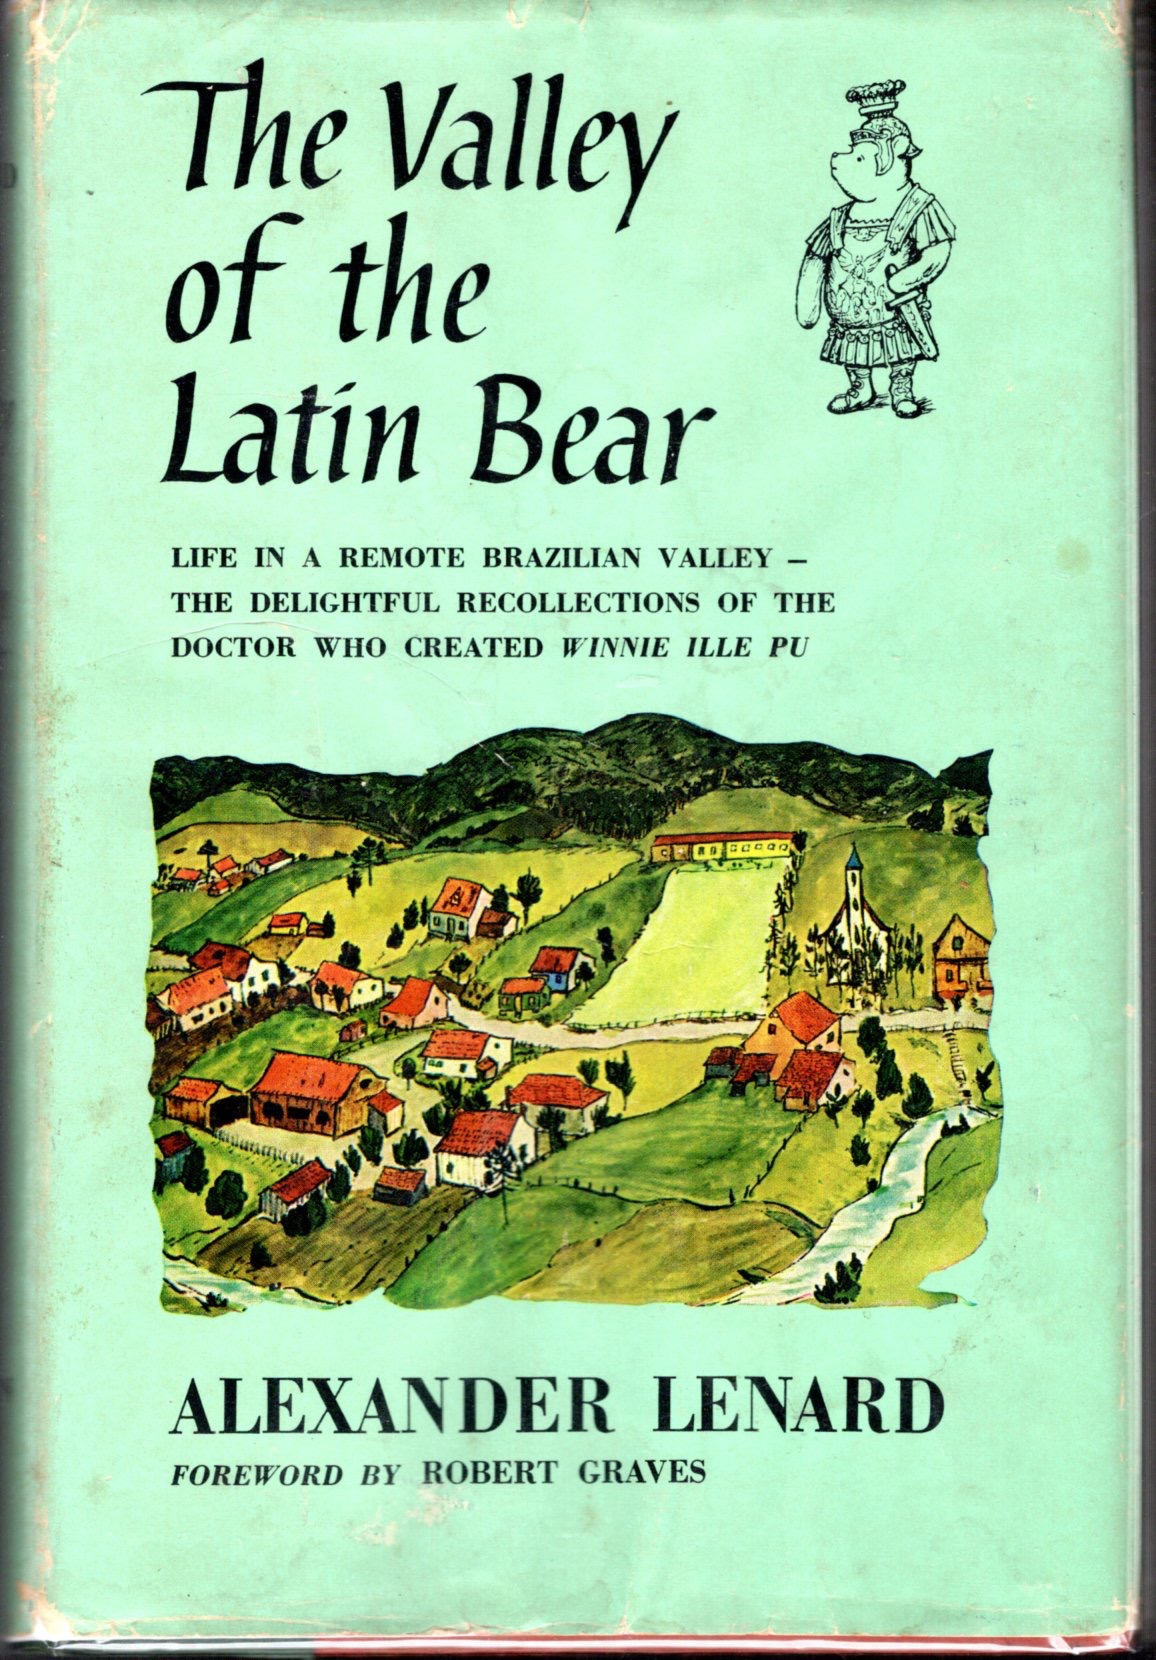 The Valley Of The Latin Bear, Life In A Remote Brazilian Valley -- The Delightful Recollections Of The Doctor Who Created Winnie Ille Pu _ ALEXANDER LENARD